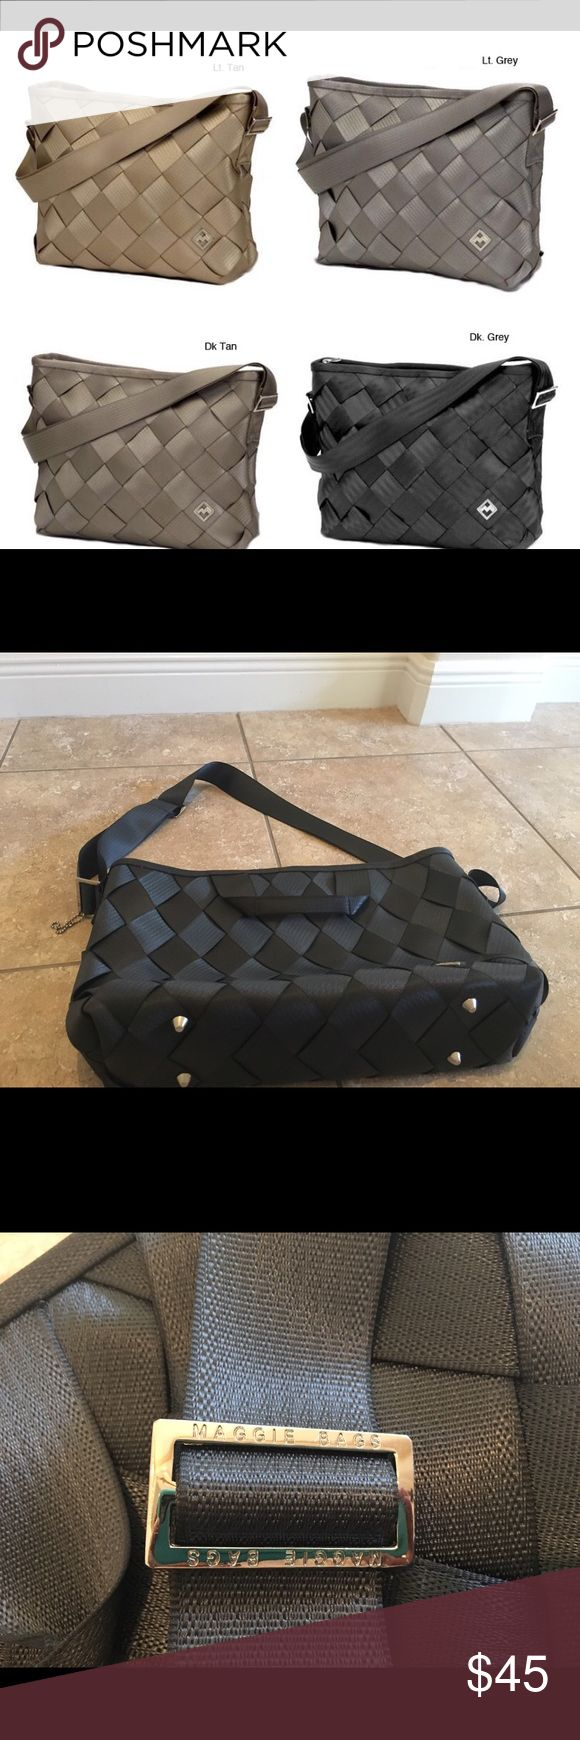 Maggie Bag seatbelt messenger bag Authentic seatbelt bag by Maggie bags. Excellent condition, never used. Inside is lined in purple. Has a side pocket inside of bag, a card holder on side of bag and two other small pockets. This is a messenger bag, perfect for a laptop. Offers Welcome on this beautiful bag Bags Satchels